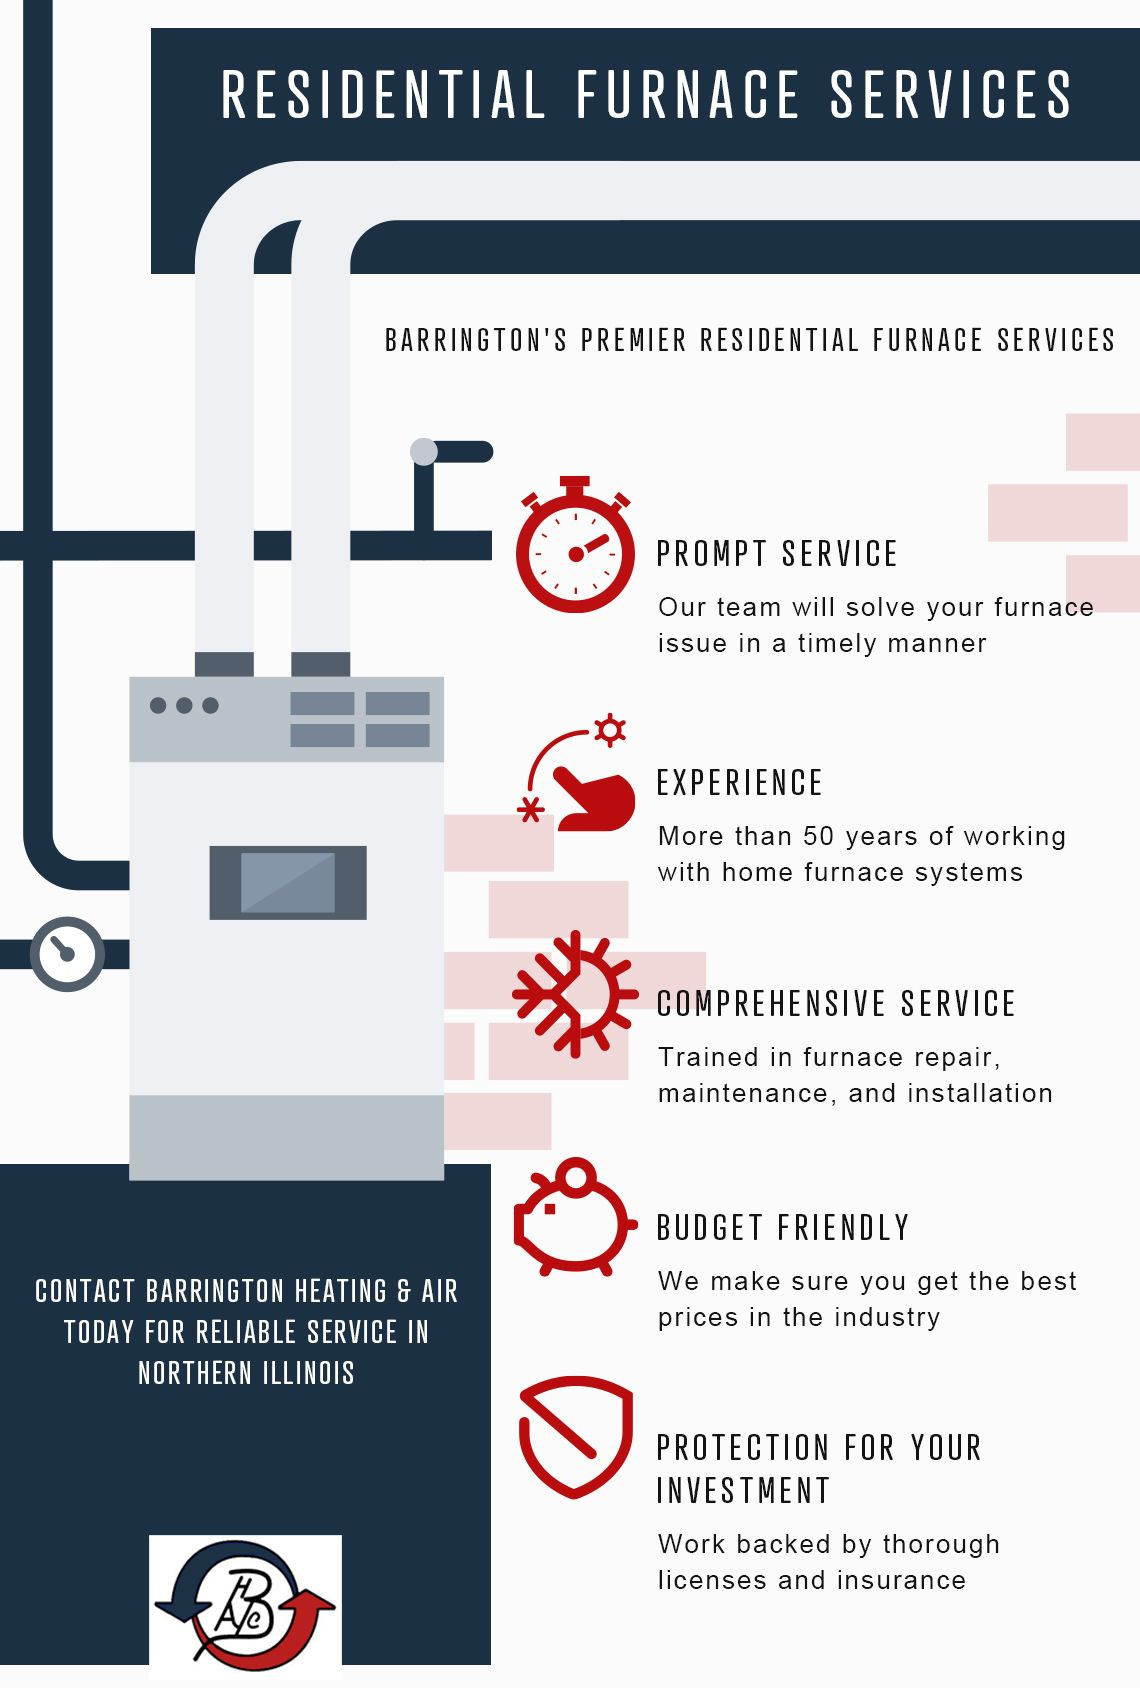 2020-04-13_Residential Furnace Service_infographic.jpg